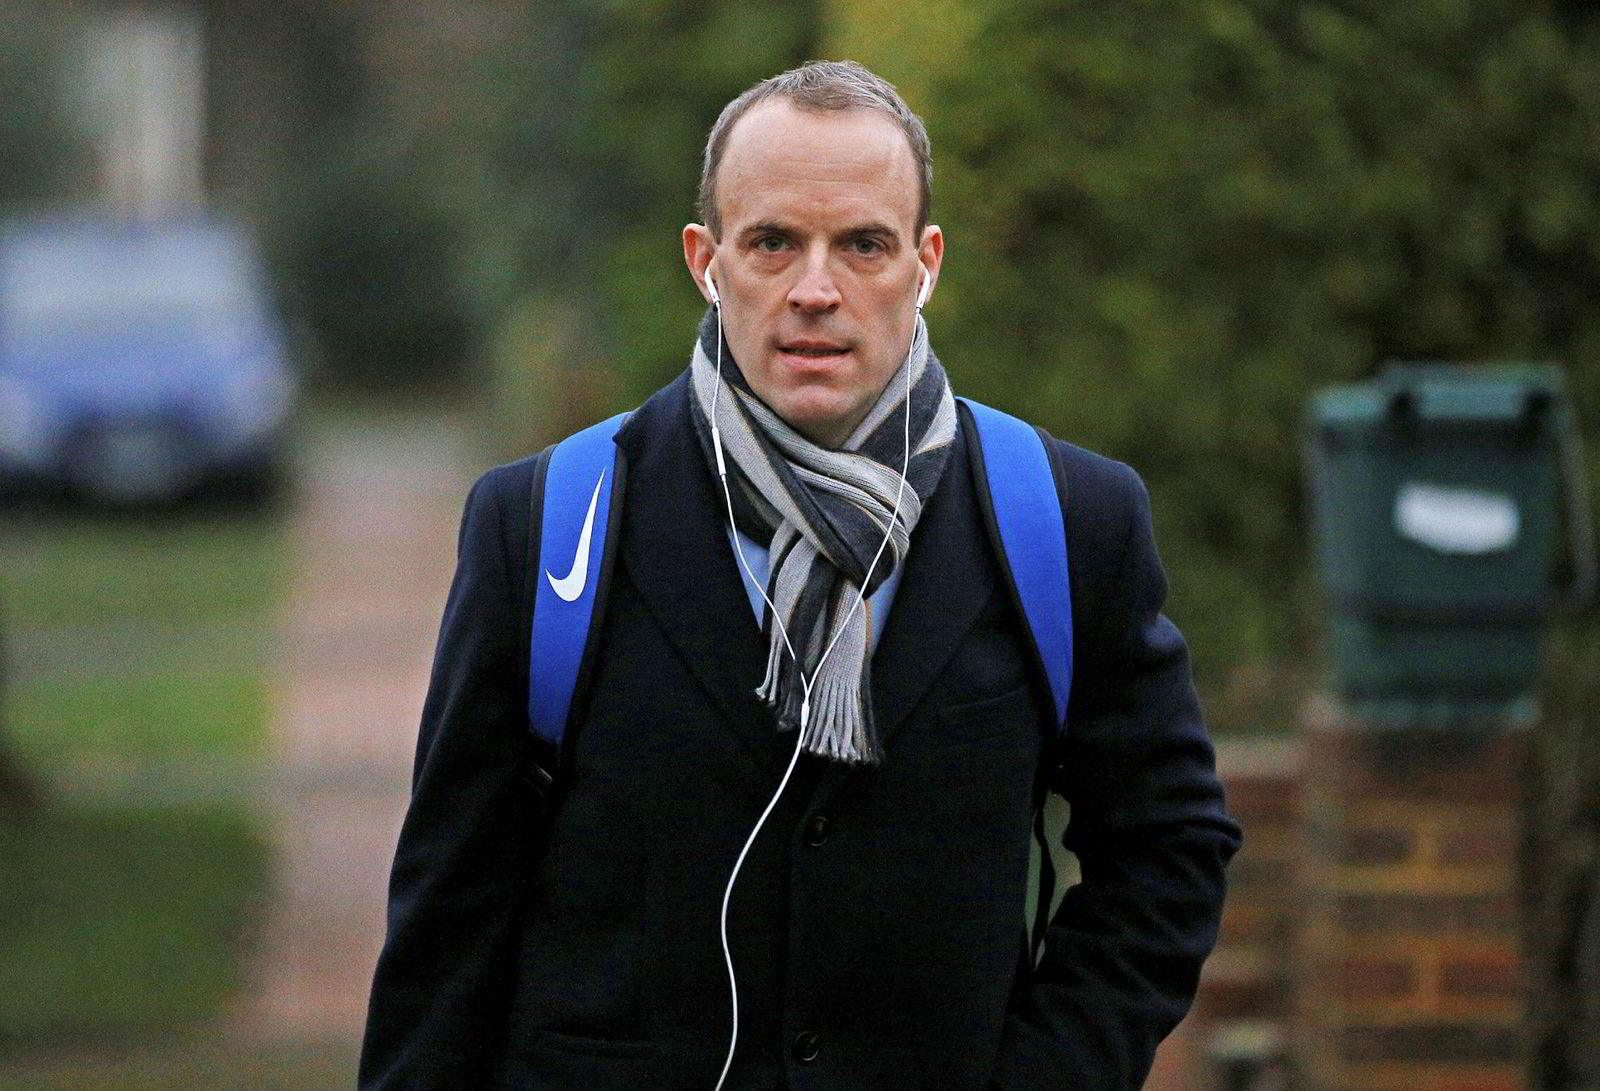 Tidligere brexit-minister Dominic Raab.